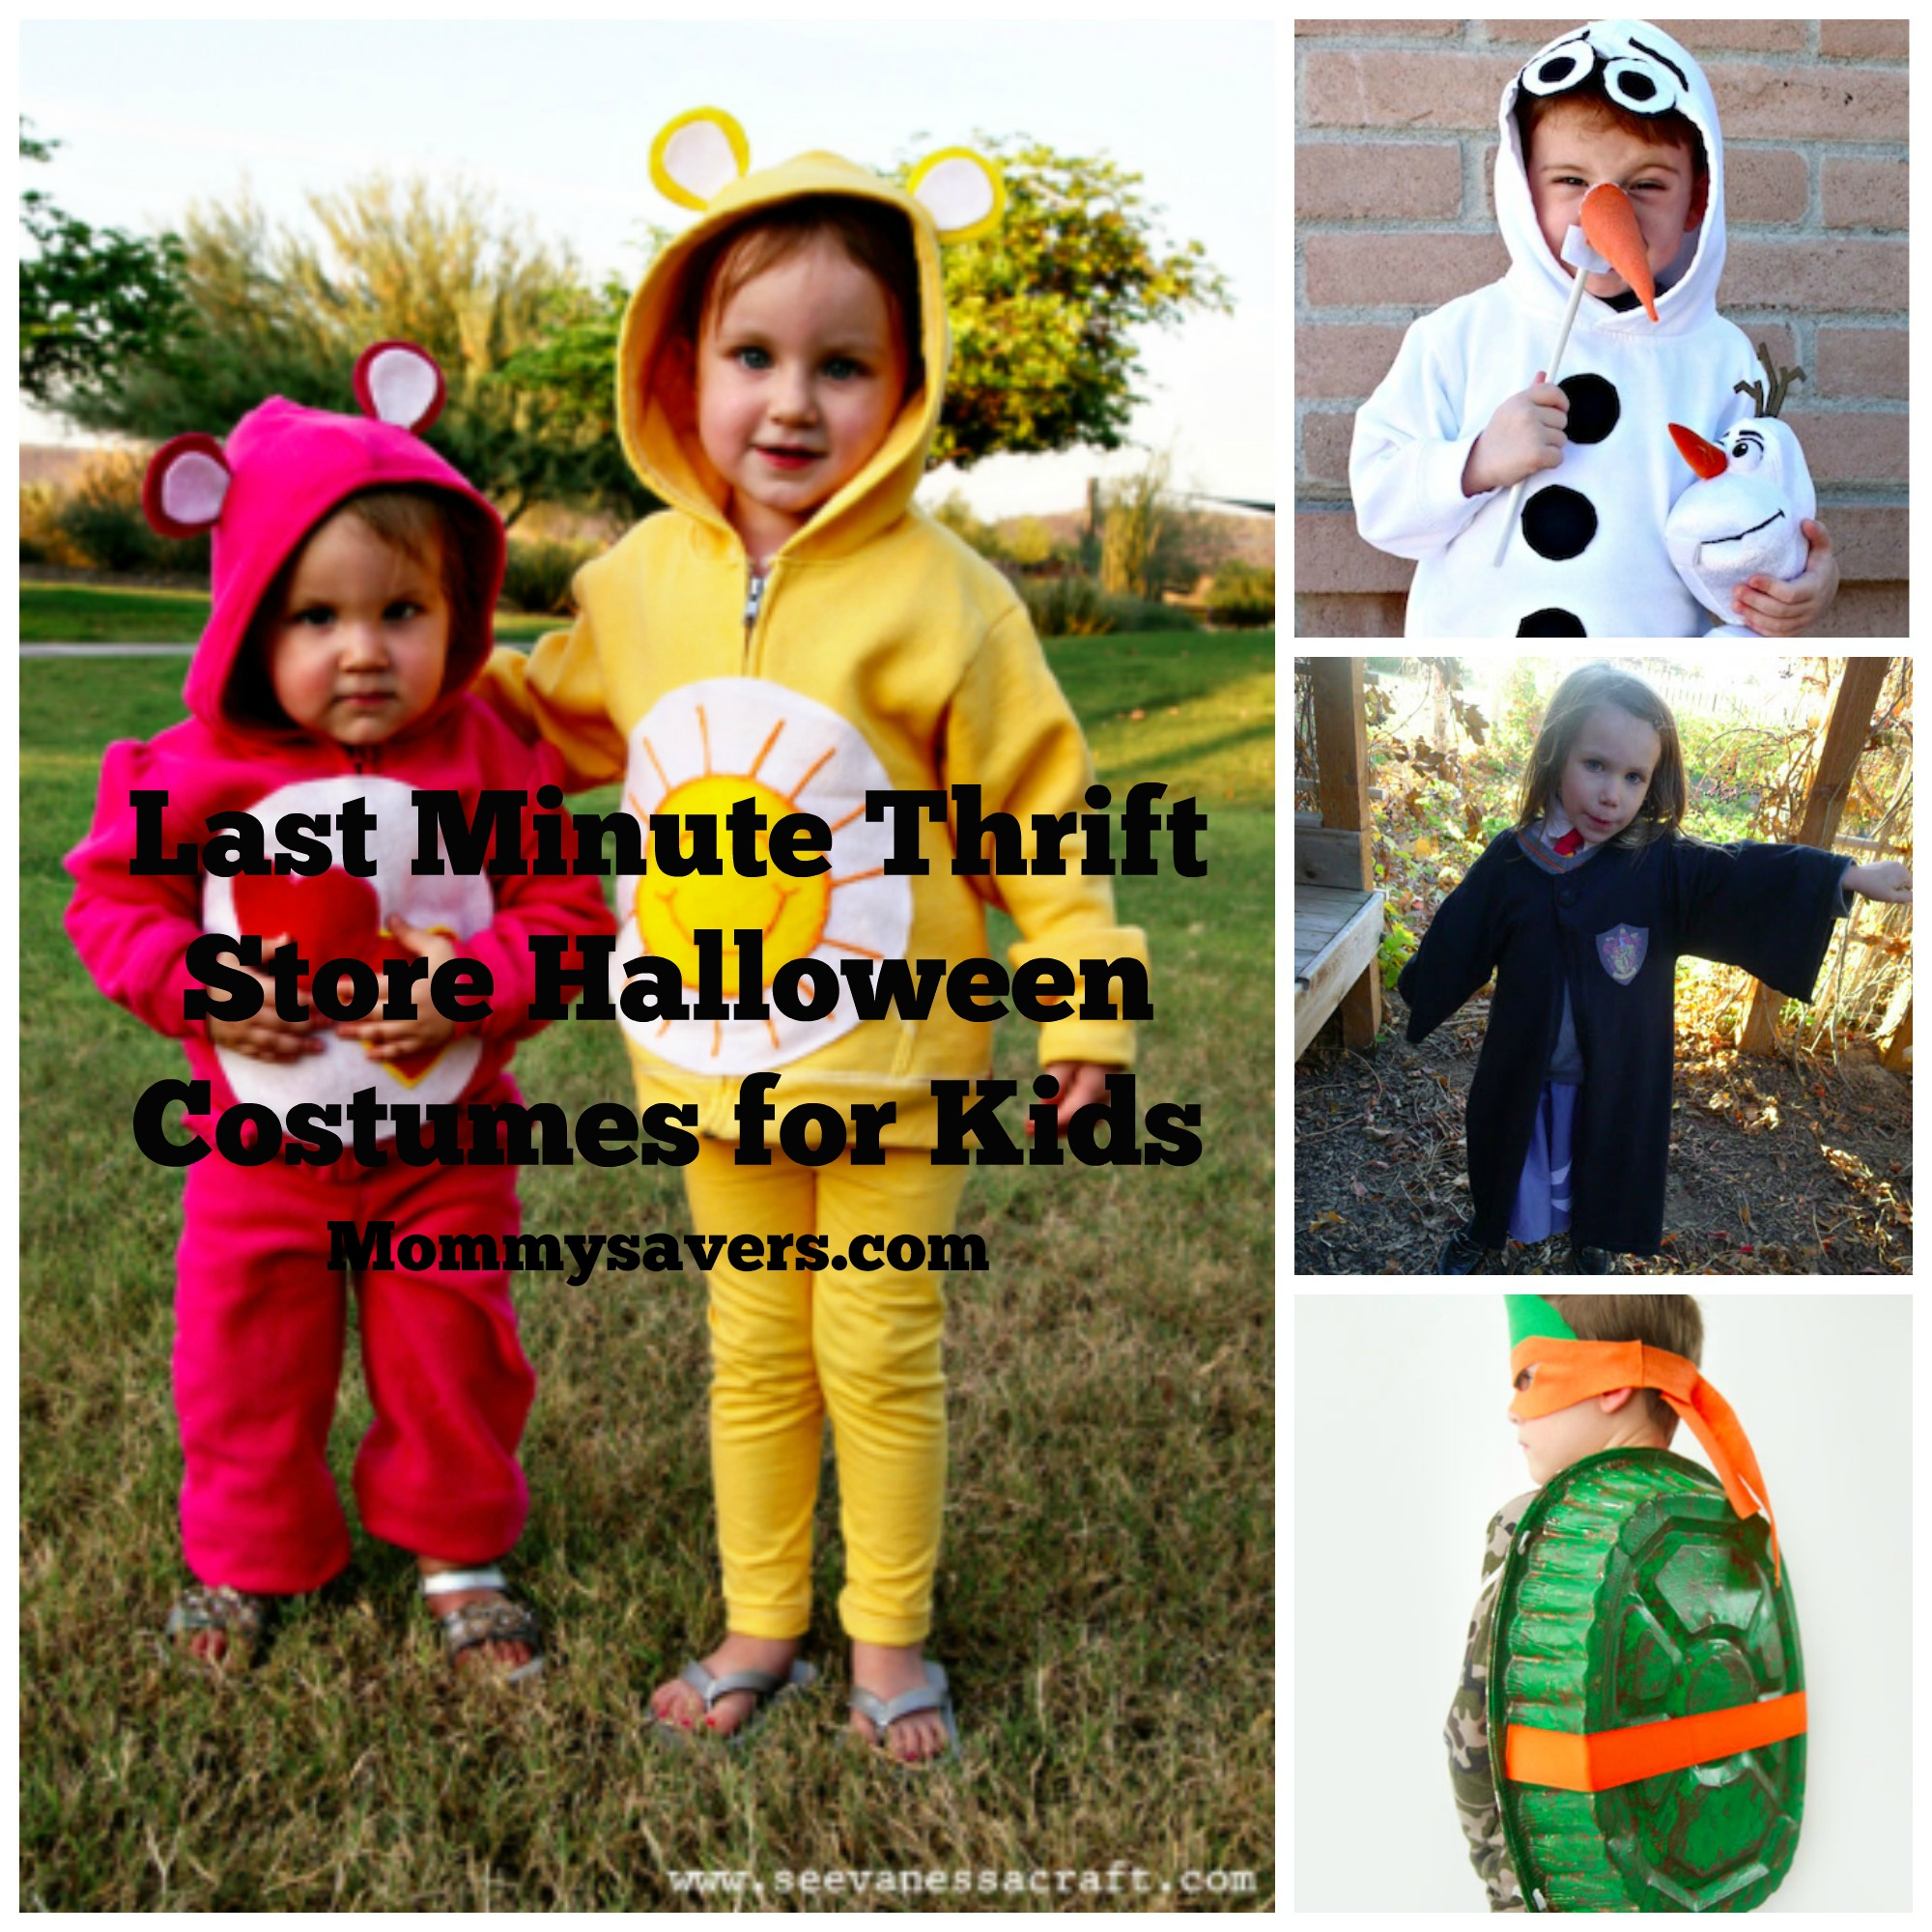 Last Minute Thrift Store Halloween Costumes for Kids ...